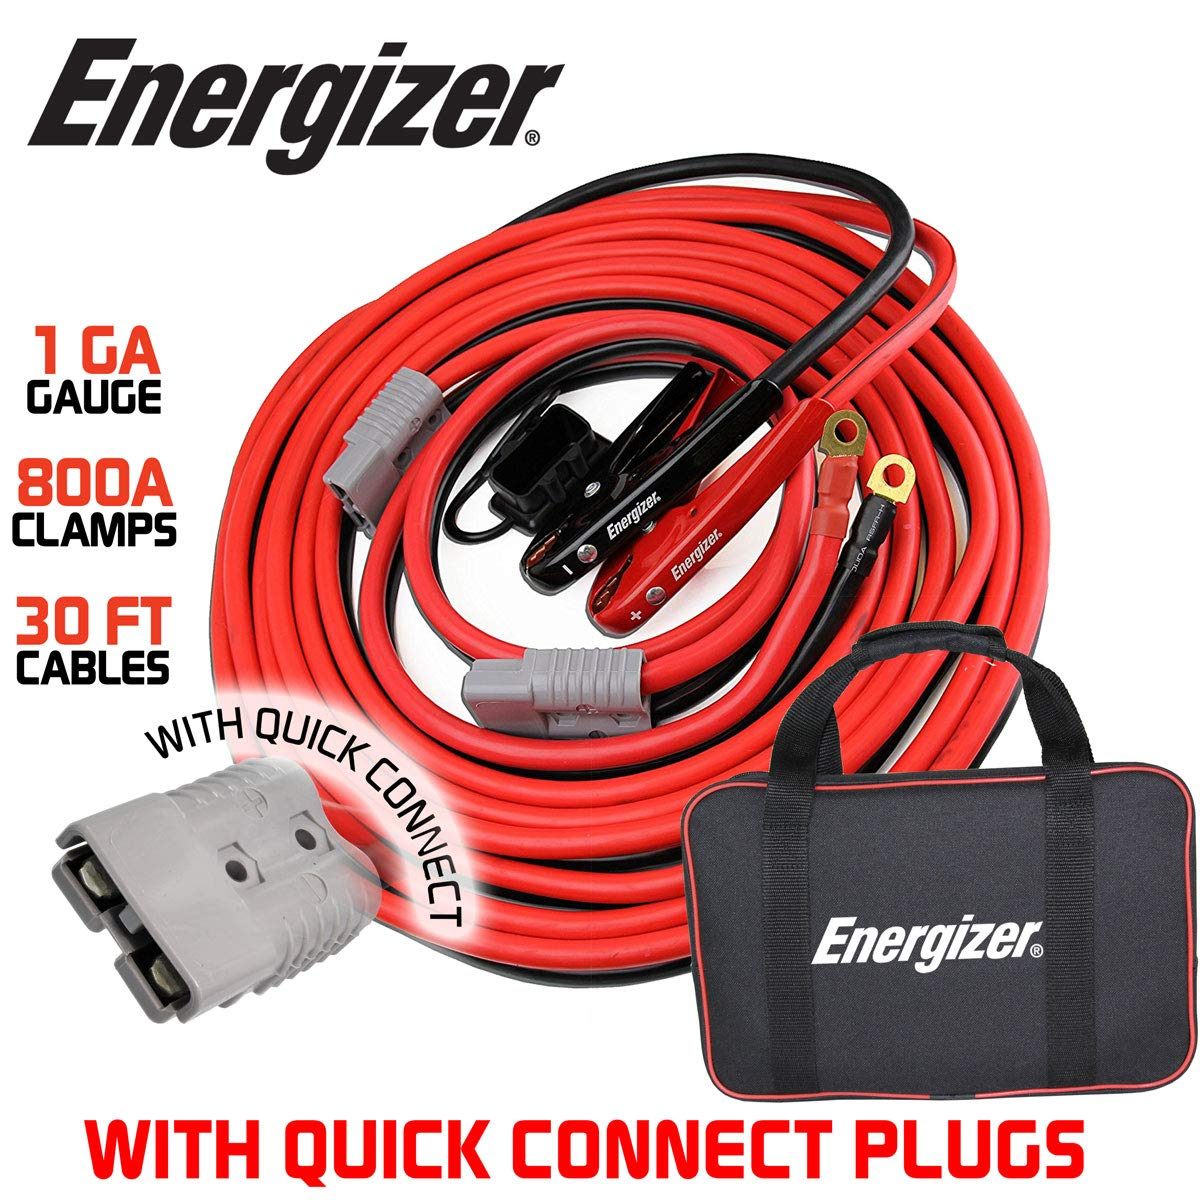 Energizer 1 Gauge 800A Permanent Installation kit Jumper Battery Cables with Quick Connect Plug 30 Ft Booster Jump Start - 30 Ft Allows You to Boost a Battery from Behind a Vehicle by Energizer